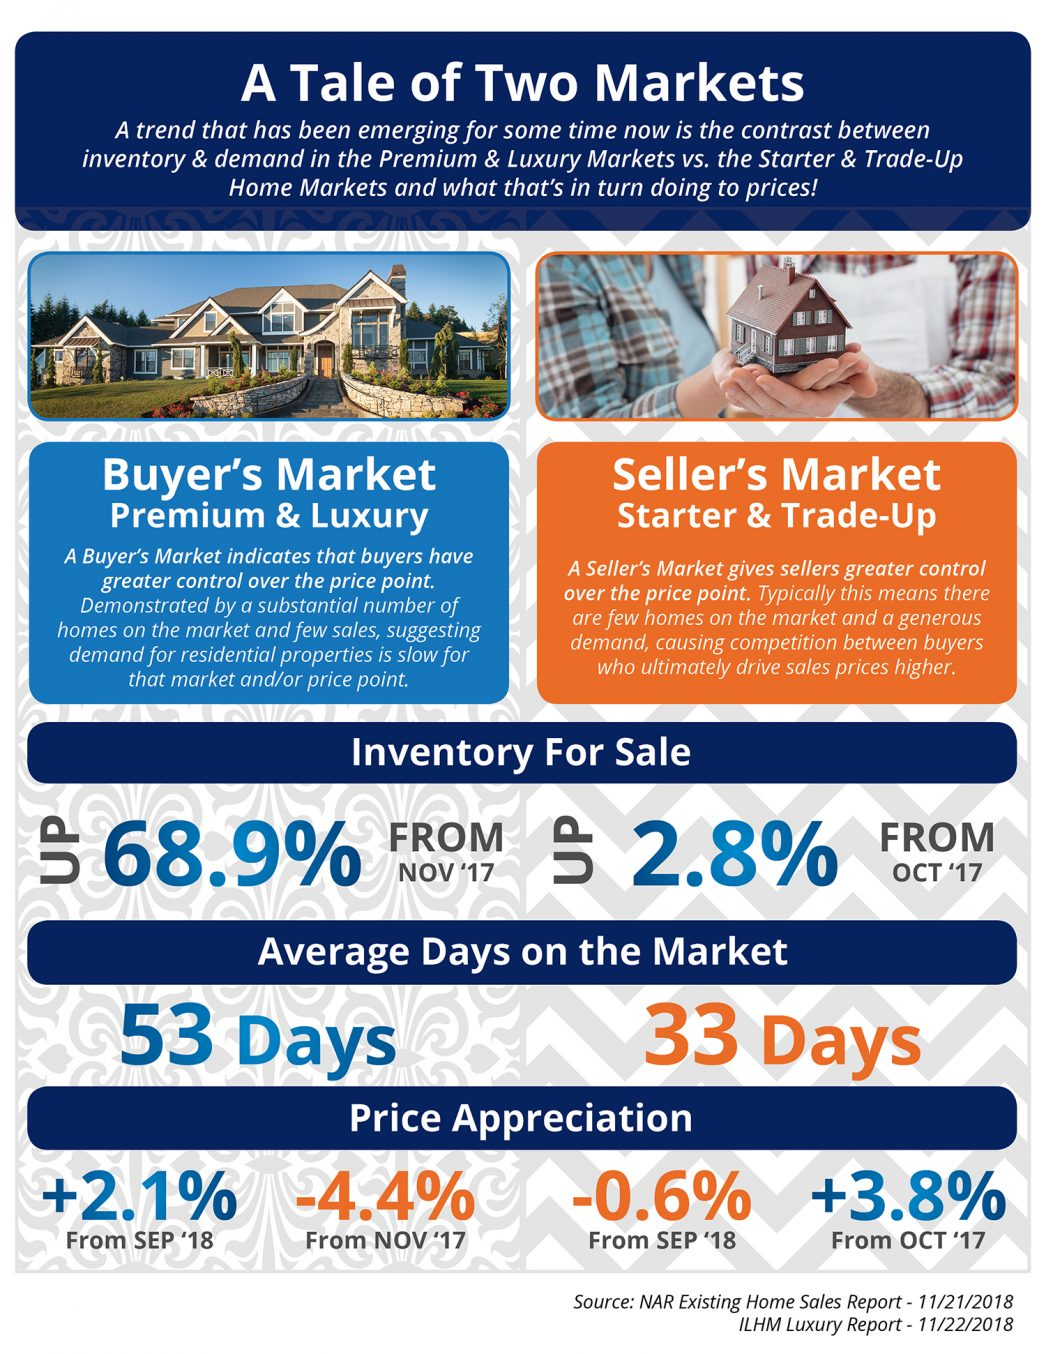 The Tale of Two Markets [INFOGRAPHIC]